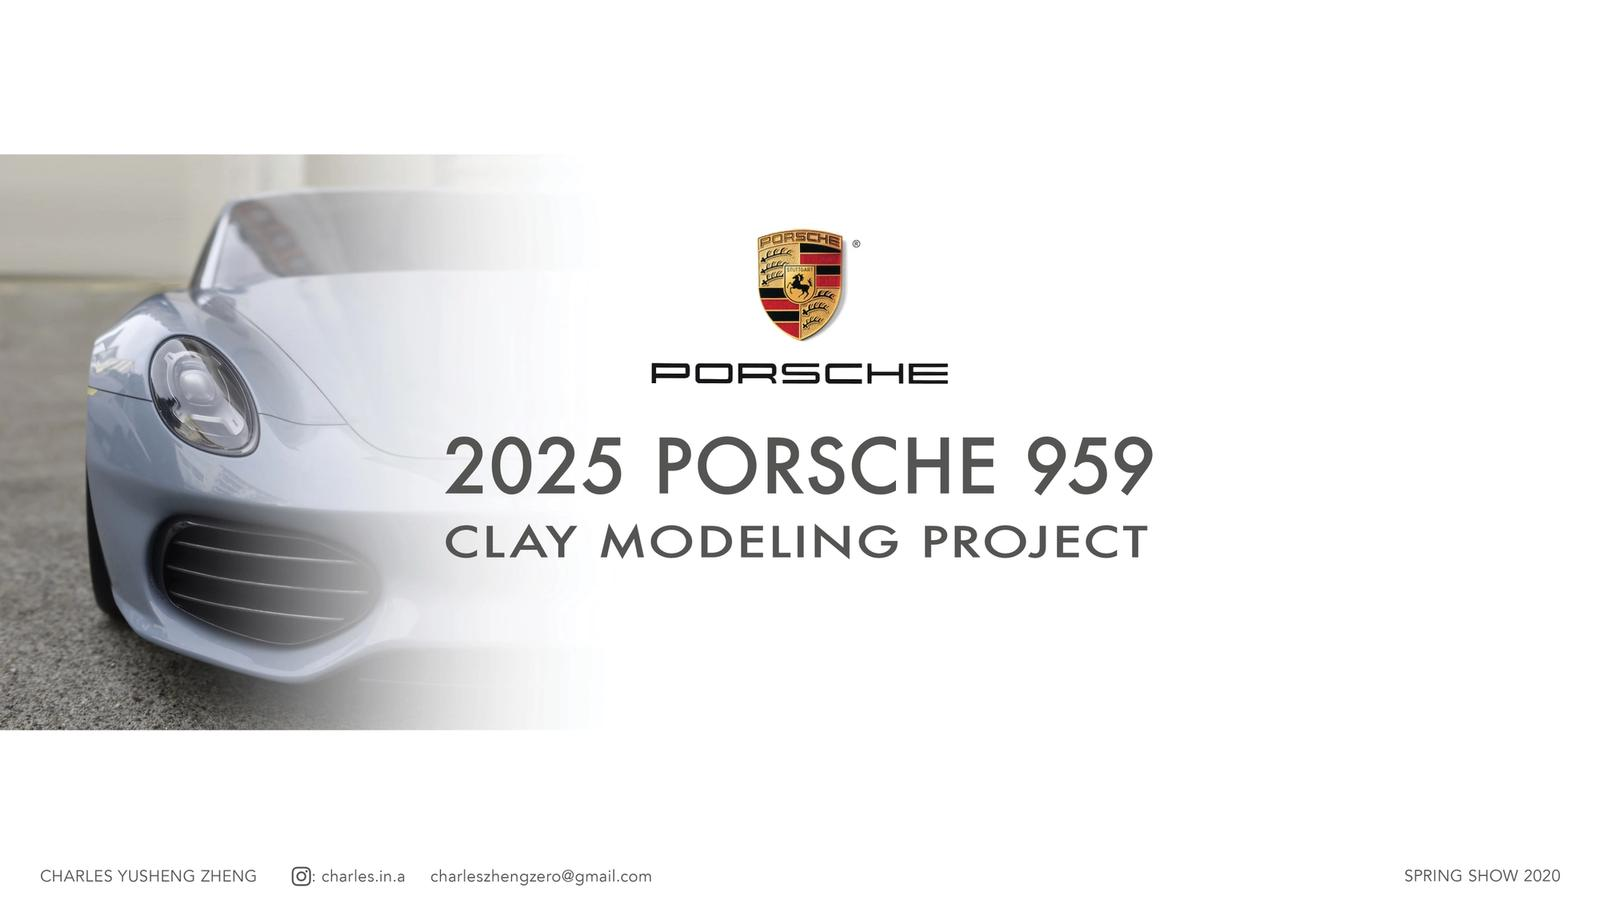 2025 Porsche 959 Concept Clay Modeling Project